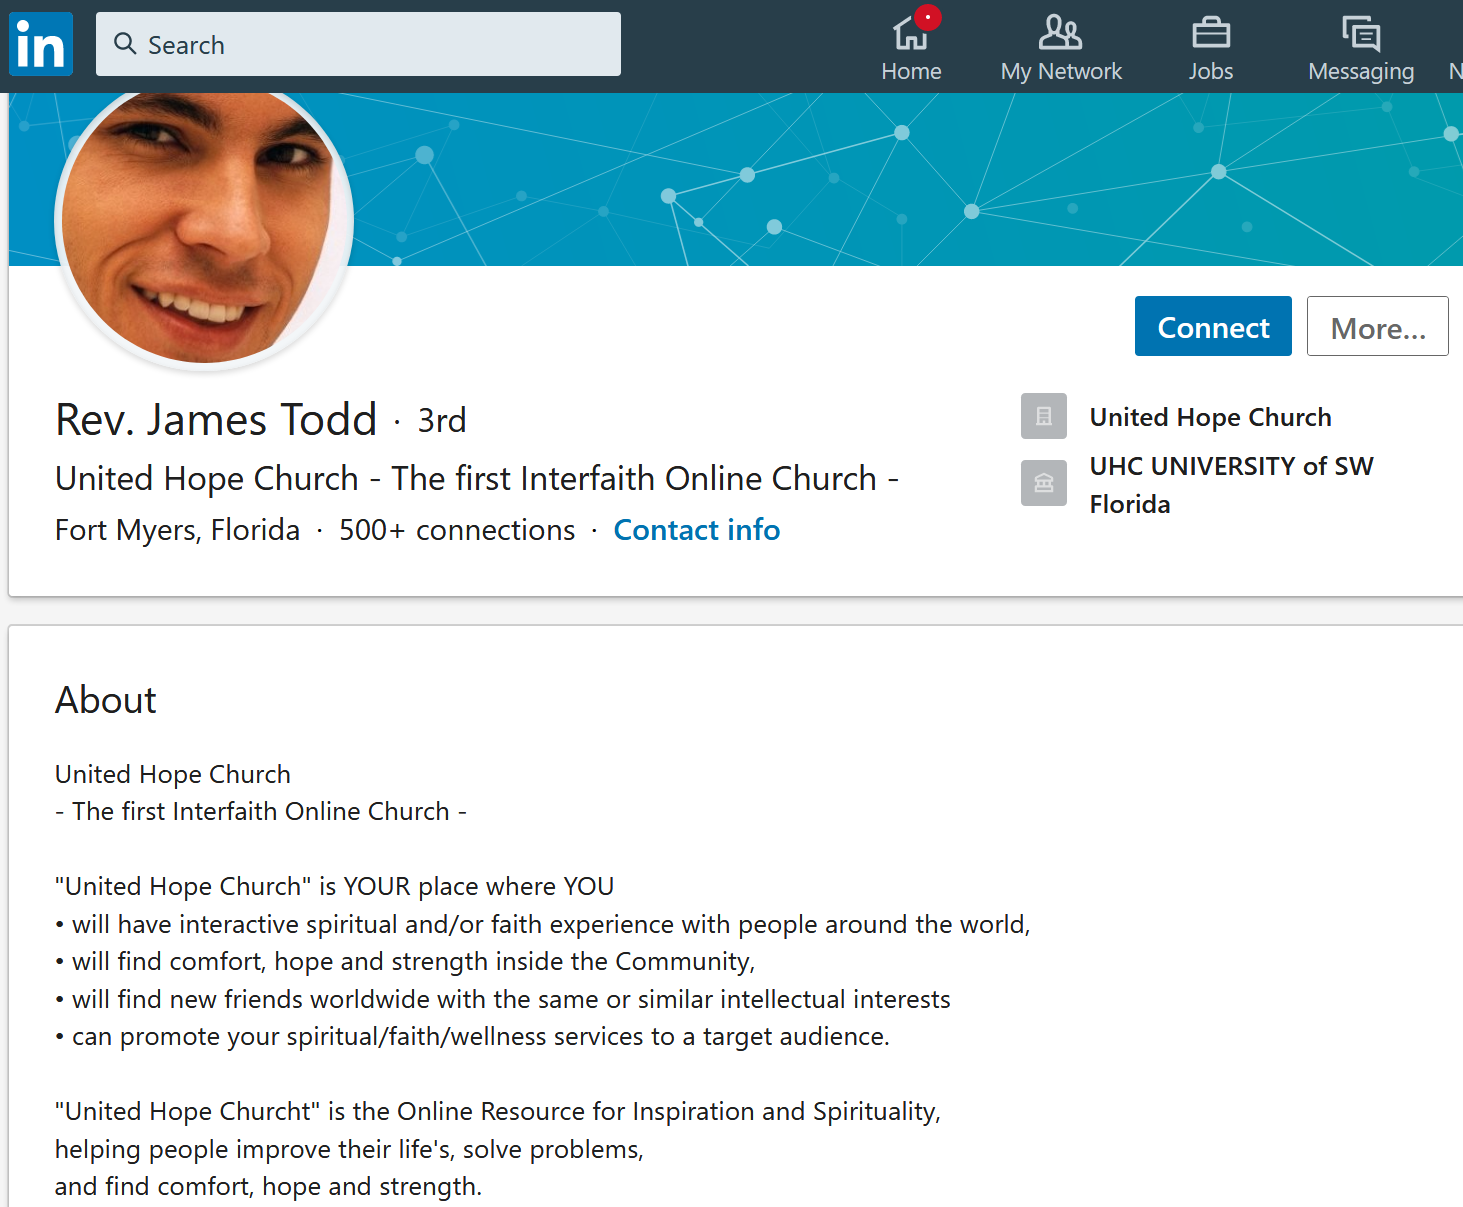 "2. kép: James Todd, ill. a ""United Hope Church of SW Florida"" <a href='https://www.linkedin.com/in/unitedhopechurch/'>oldala a LinkedIn-en</a>"